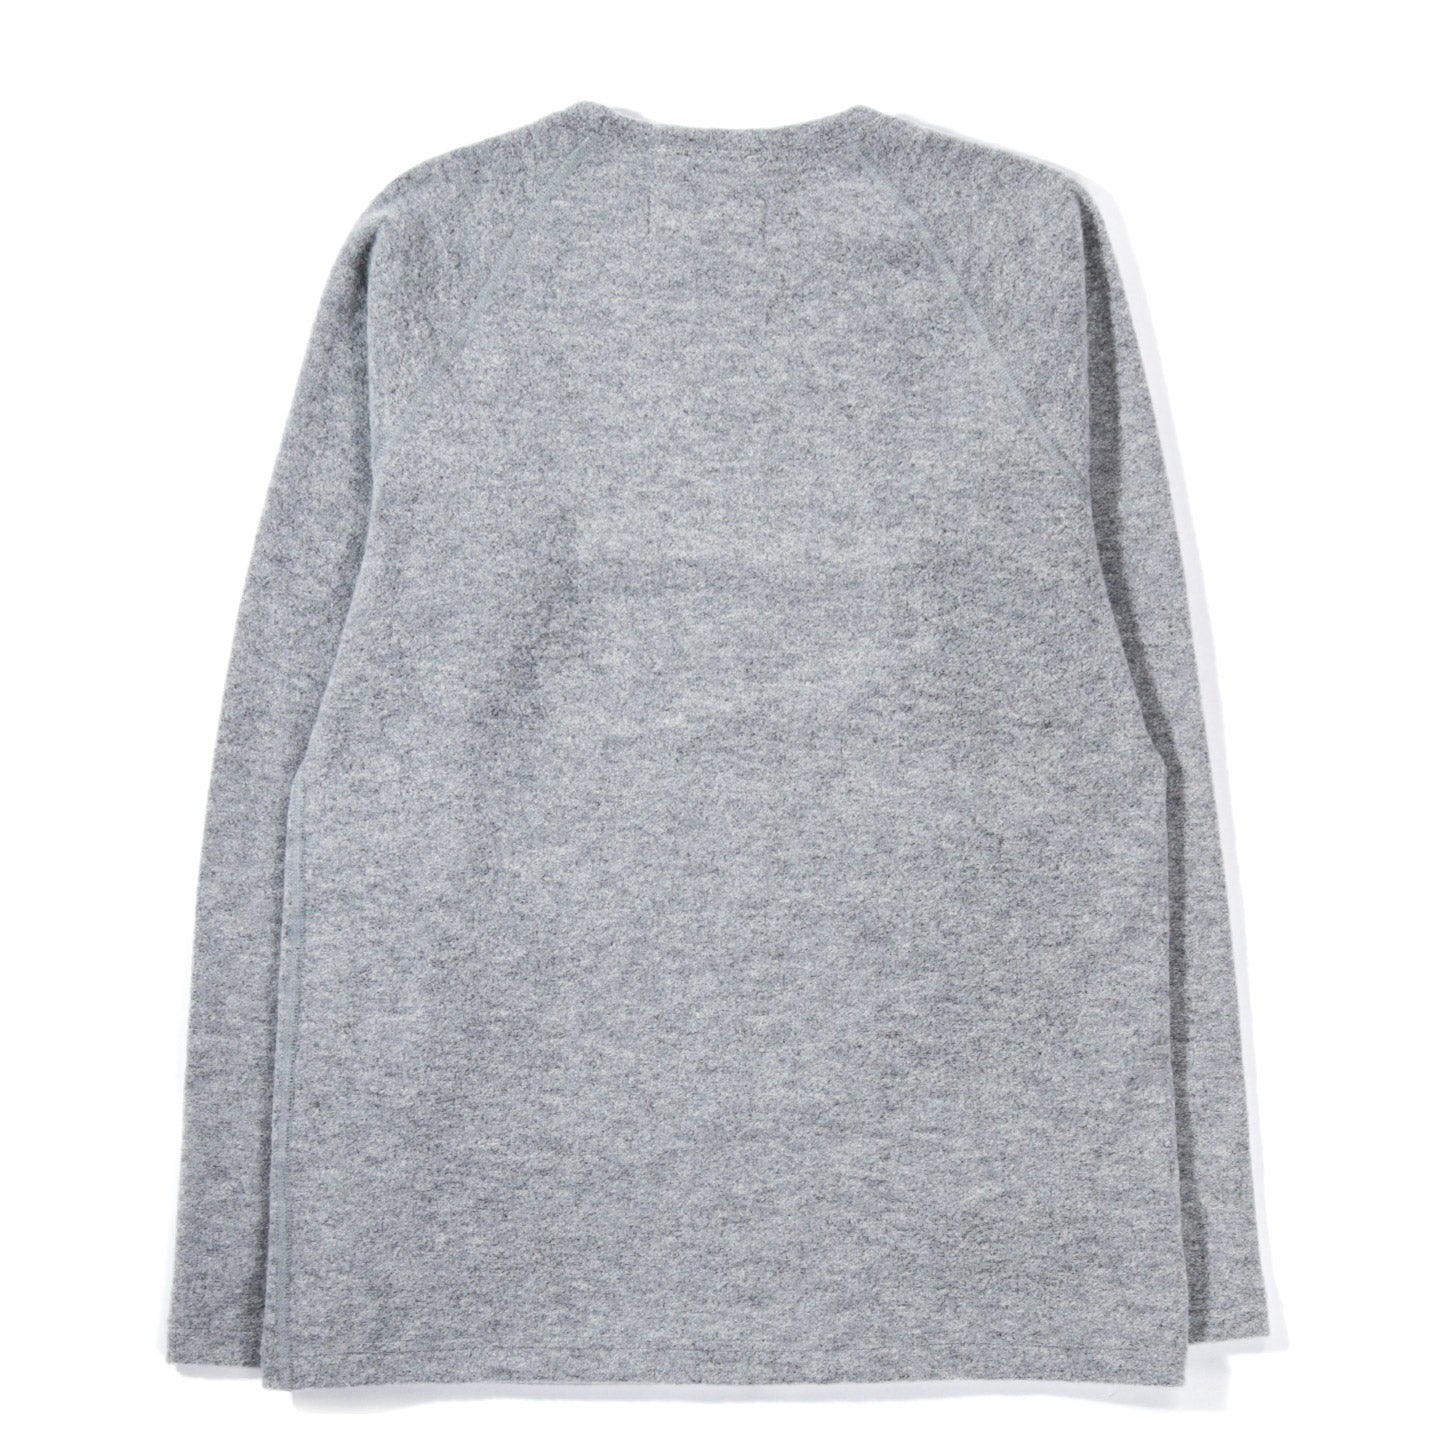 WINGS + HORNS FELTED WOOL CREWNECK HEATHER GREY